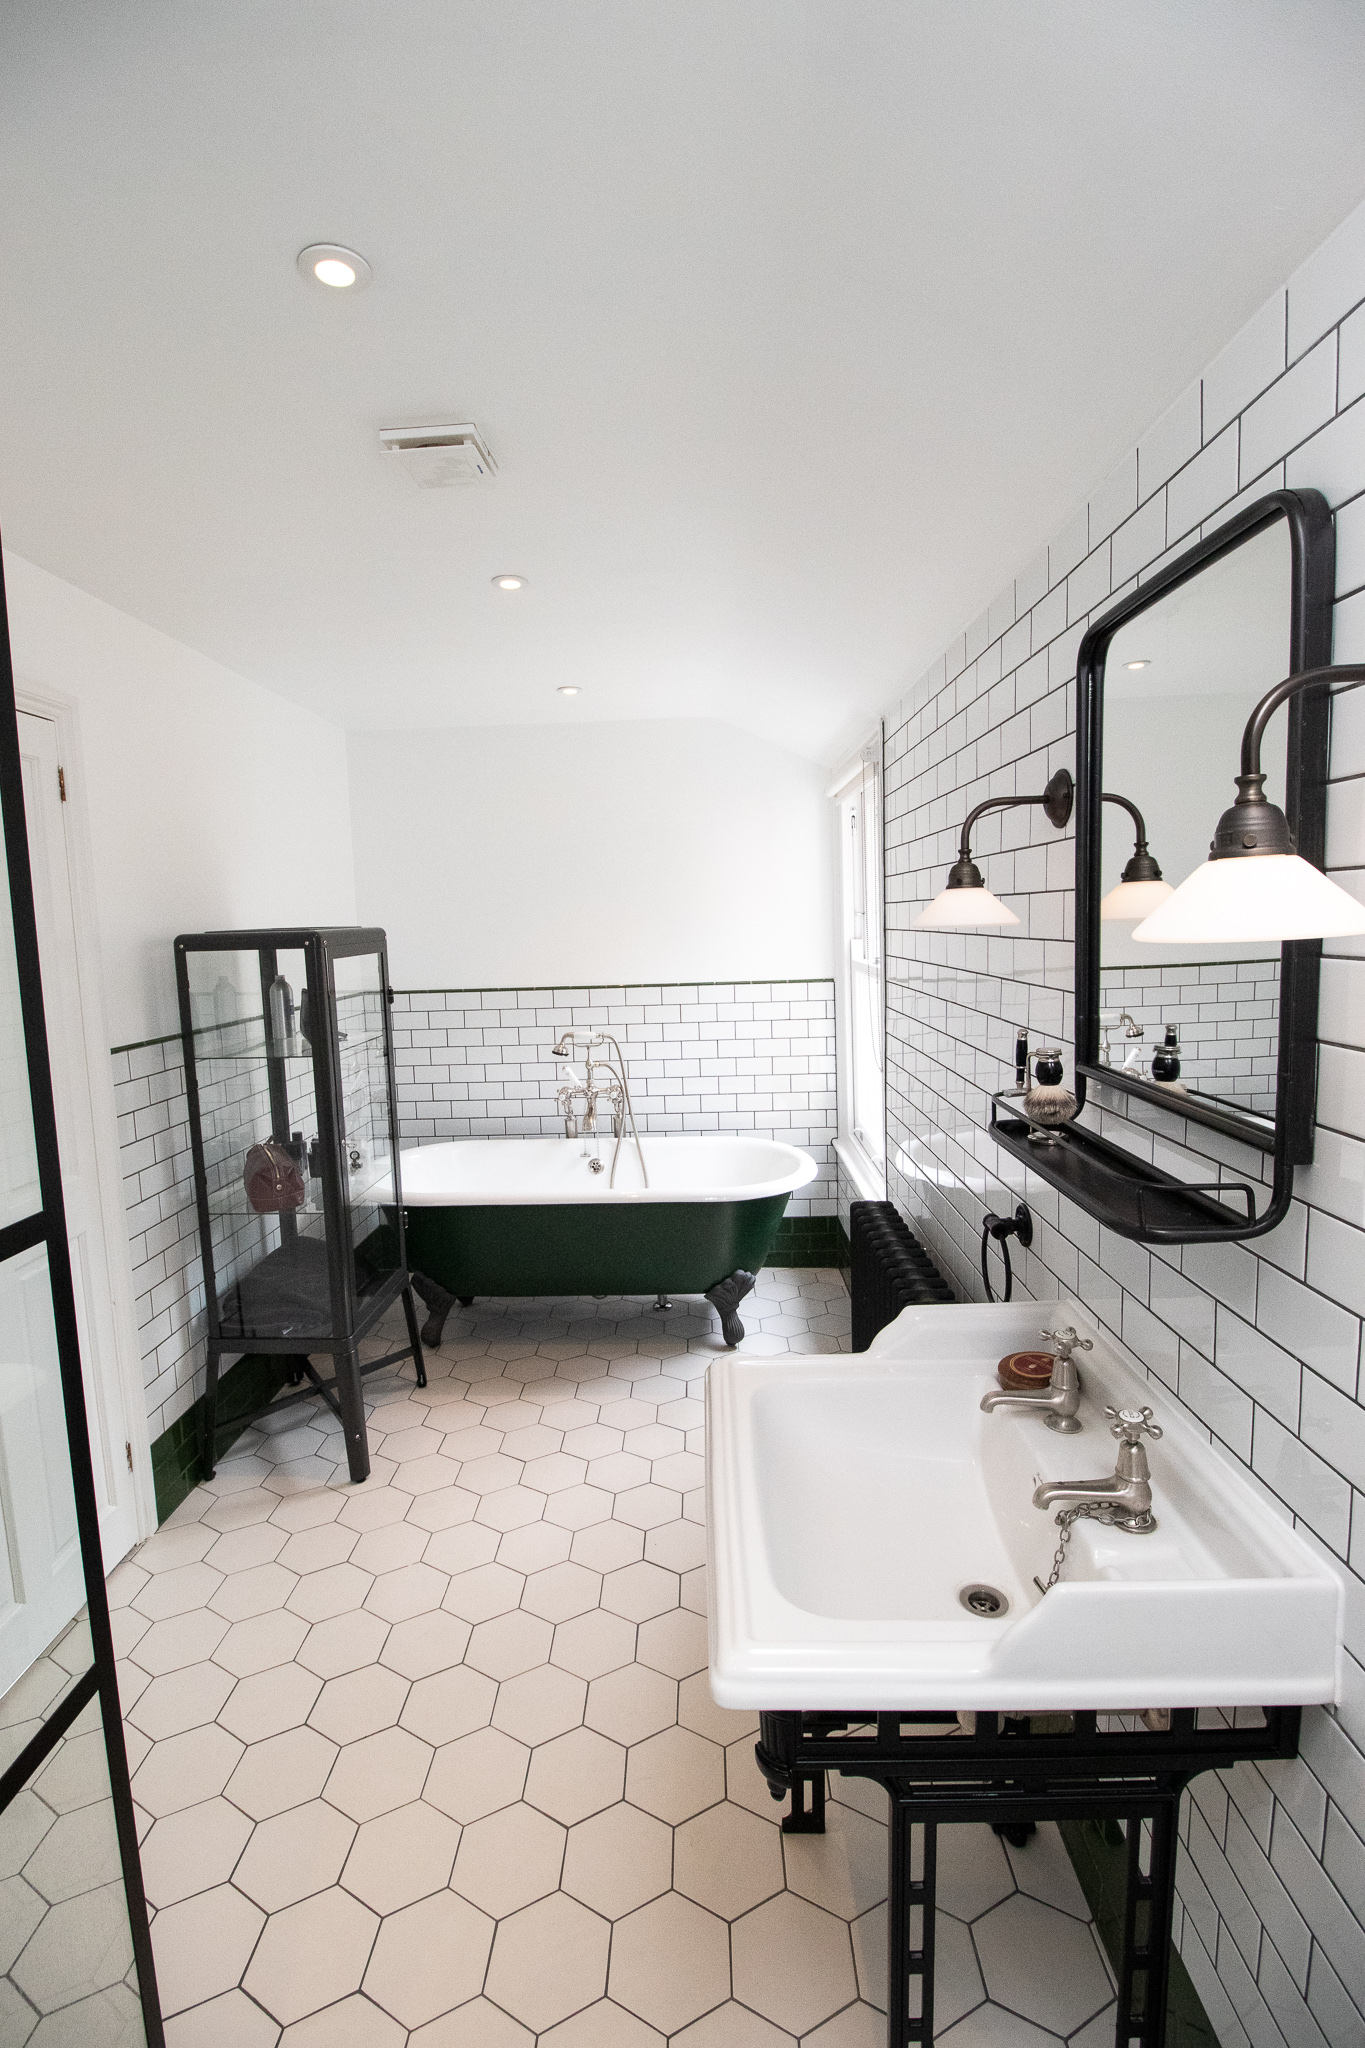 SUBWAY TILE, METRO TILE, WHITE BATHROOM, BLACK IRON, CLAW FOOT BATH TUB.jpg